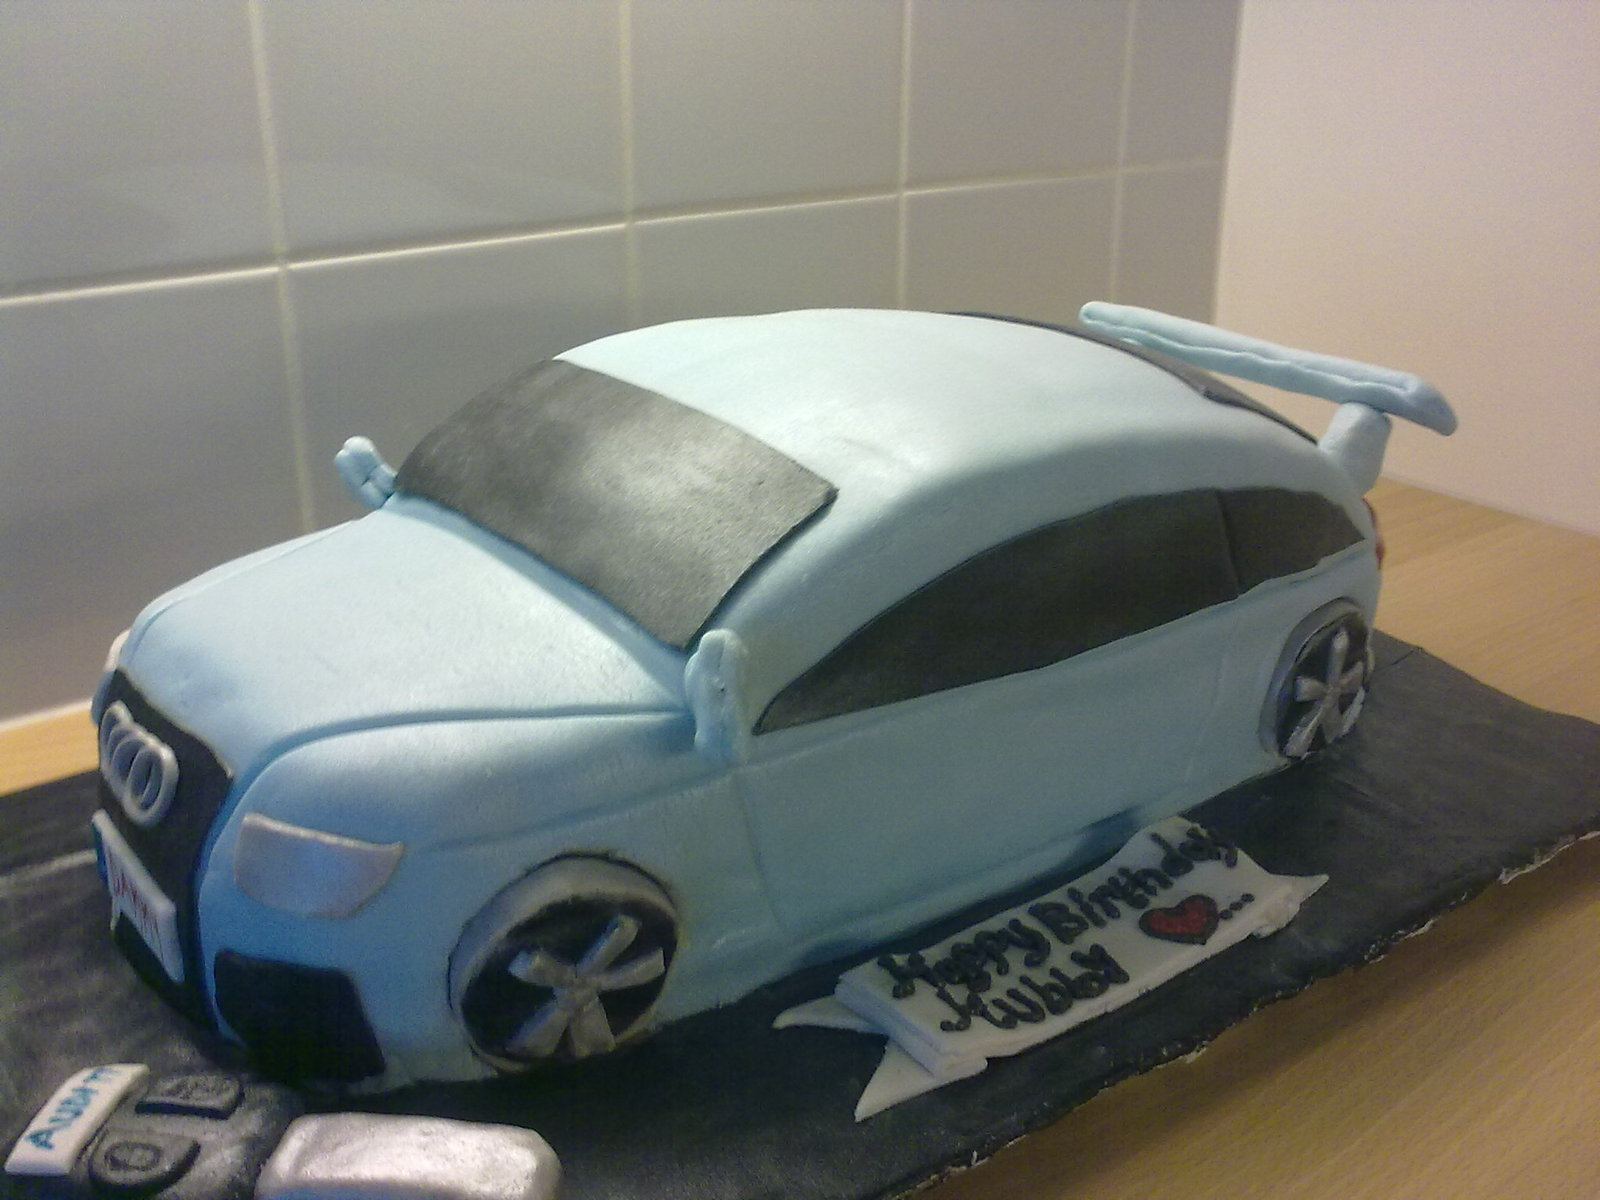 Audi Tt Cake A Car Cake Recipes On Cut Out Keep Creation By Ruthsenny